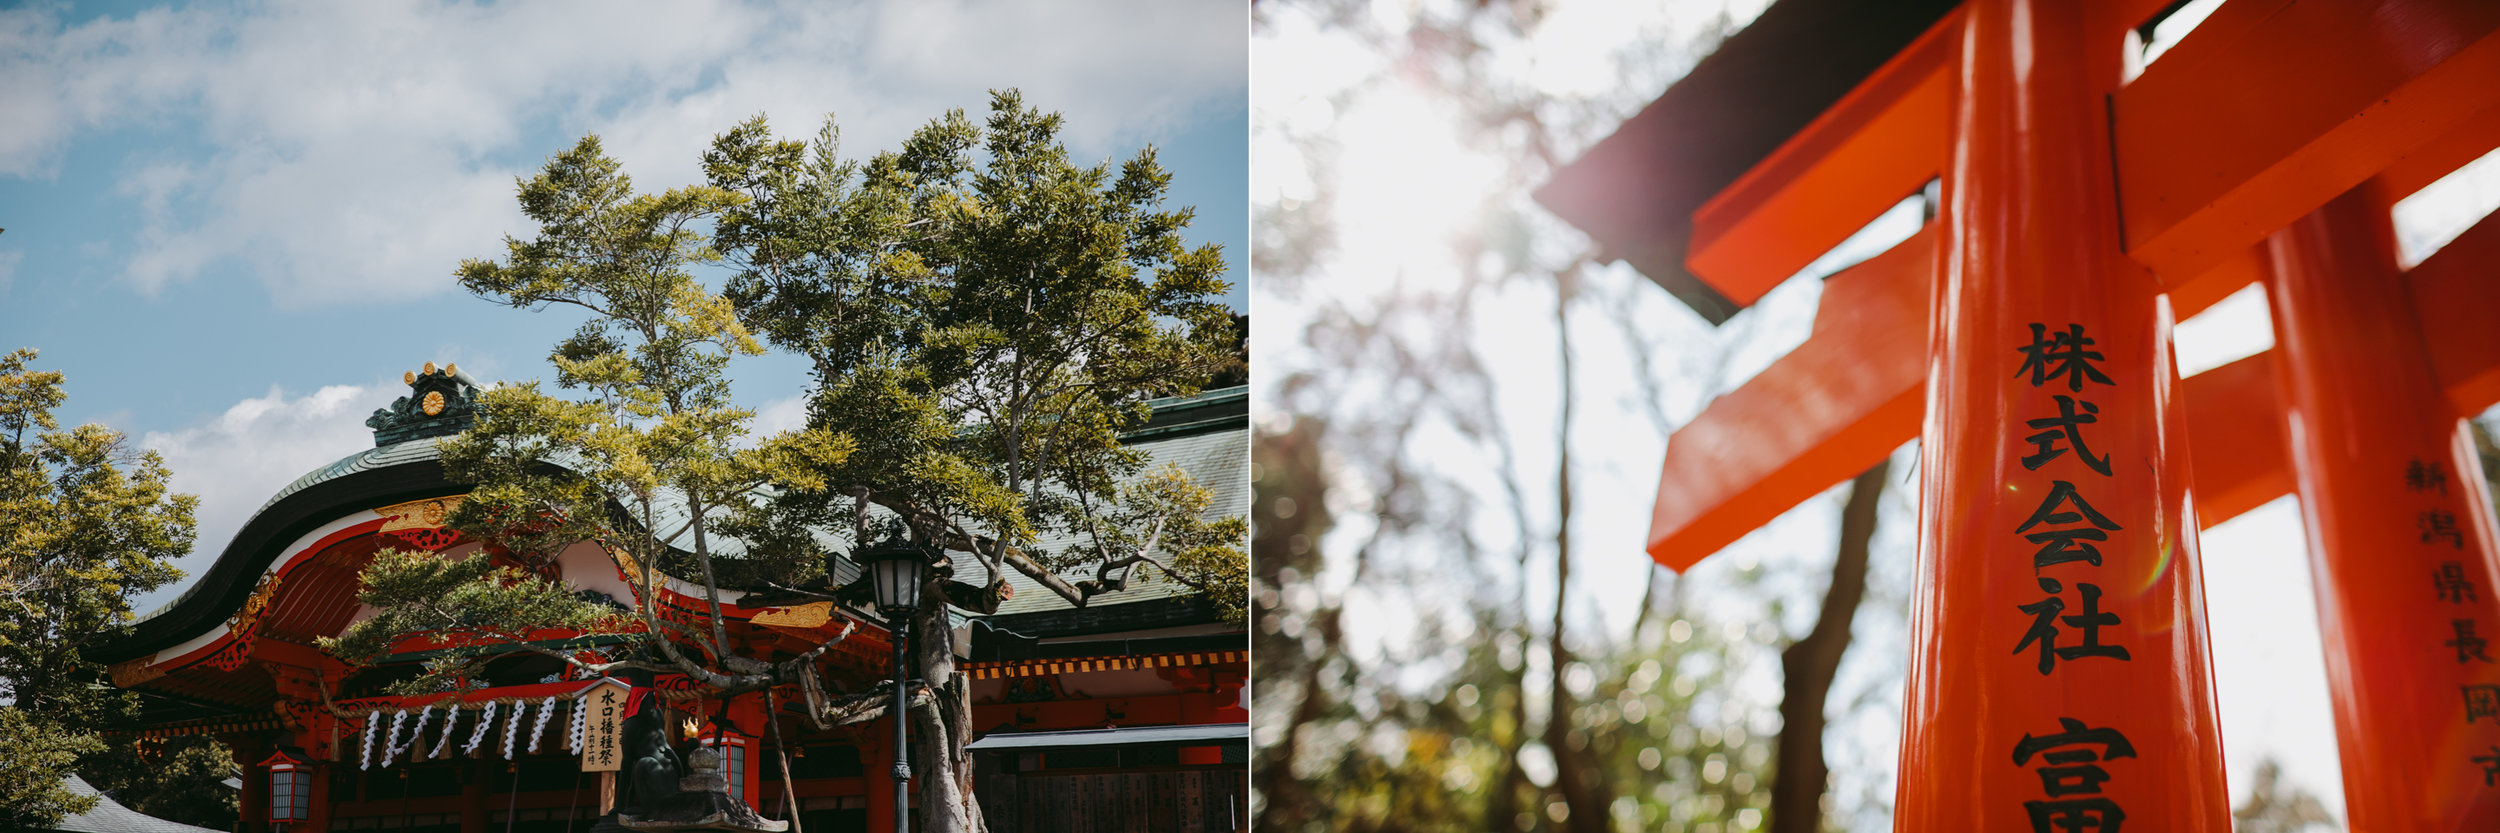 MikeSeehagel-commercial-lifestyle-travel-photography-Japan-H04.jpg